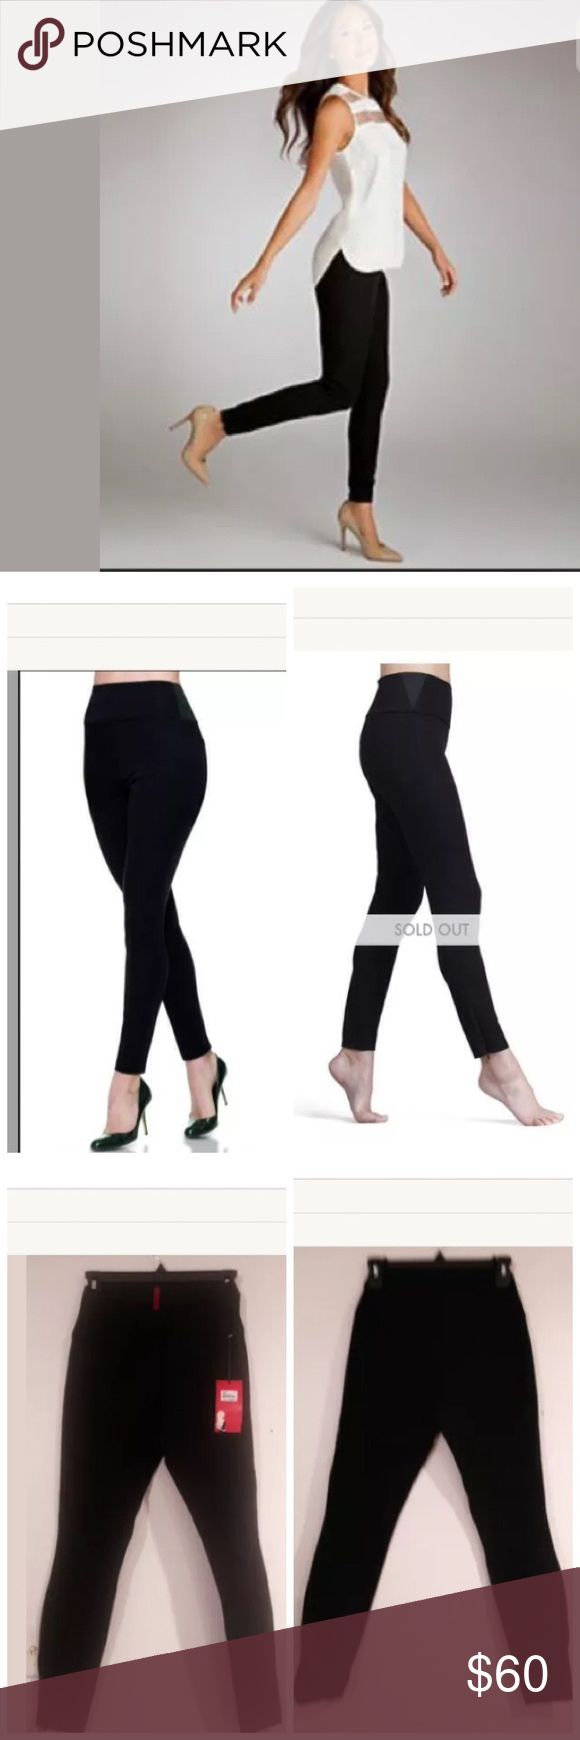 Selling this NWT READY TO WOW WOVEN TWILL LEGGINGS 2067 on Poshmark! My username is: lo10mt. #shopmycloset #poshmark #fashion #shopping #style #forsale #SPANX #Pants